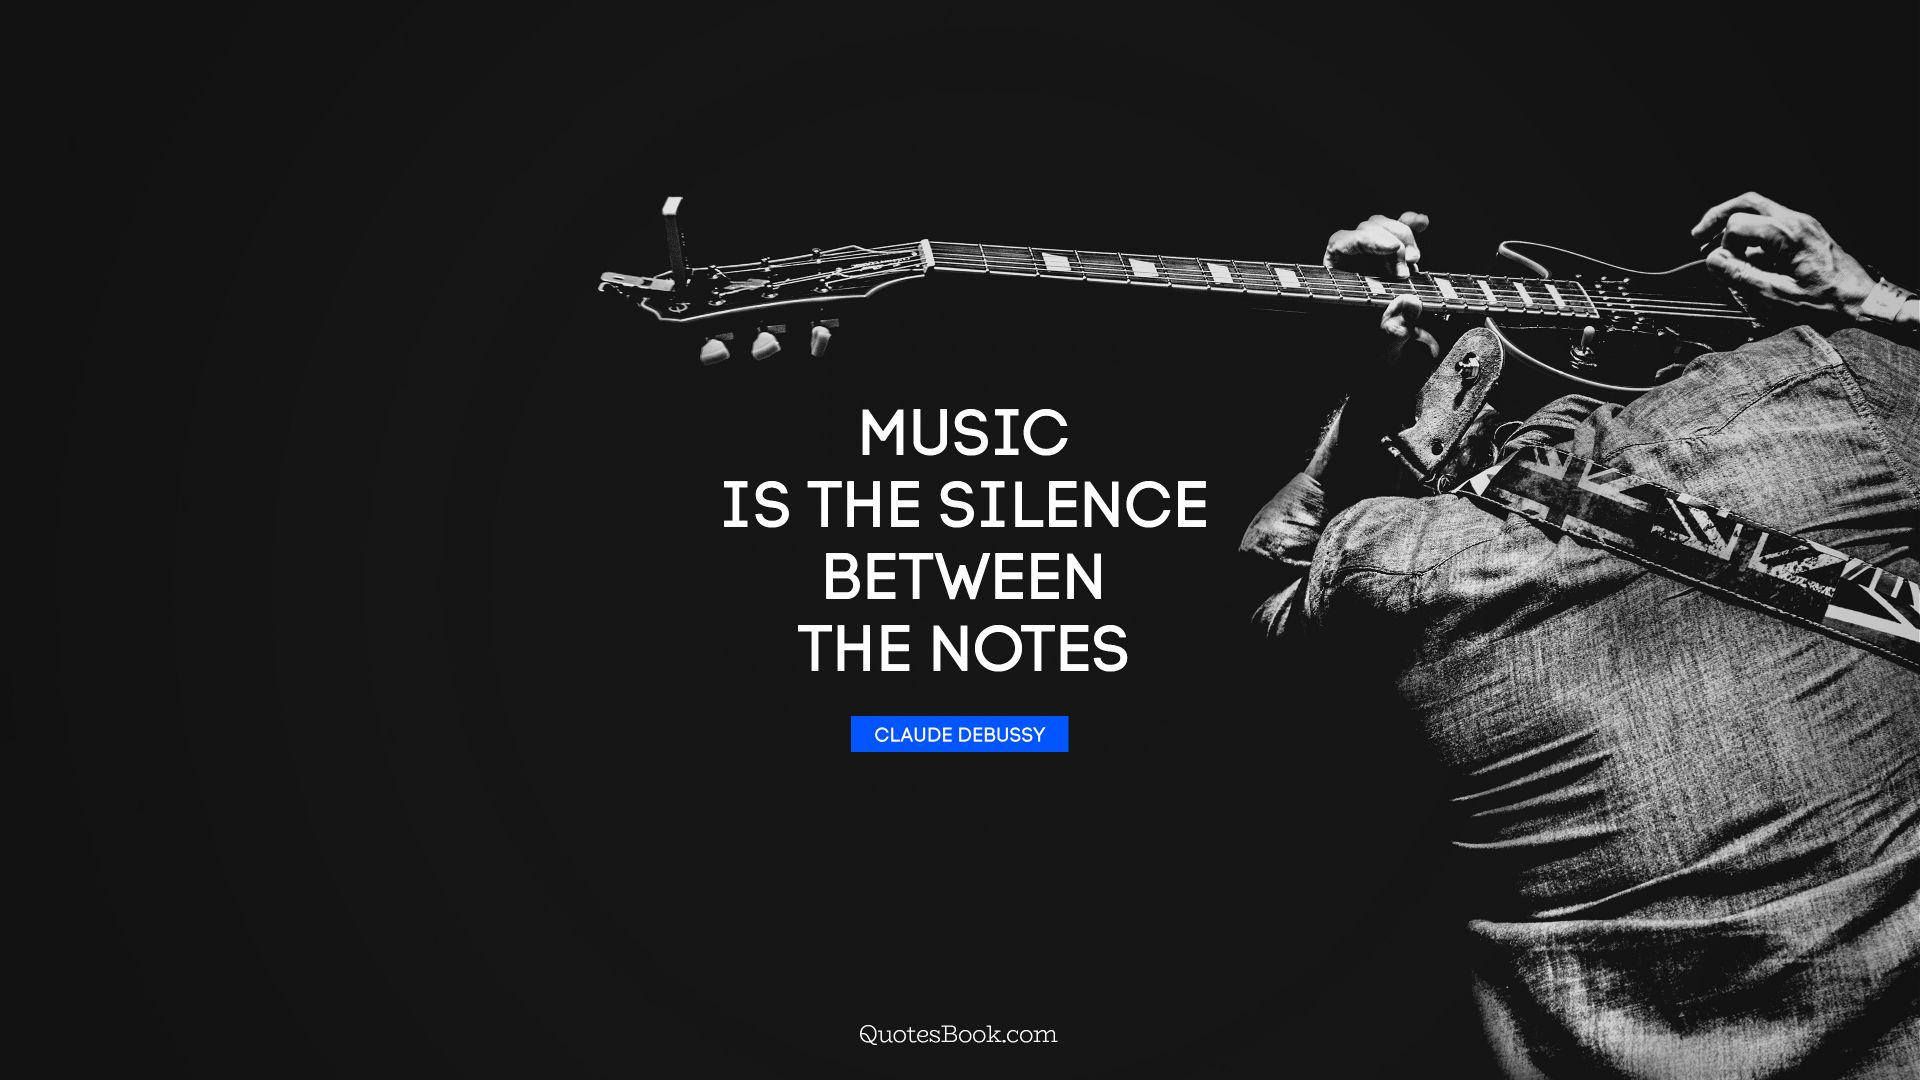 Music is the silence between the notes. - Quote by Claude Debussy